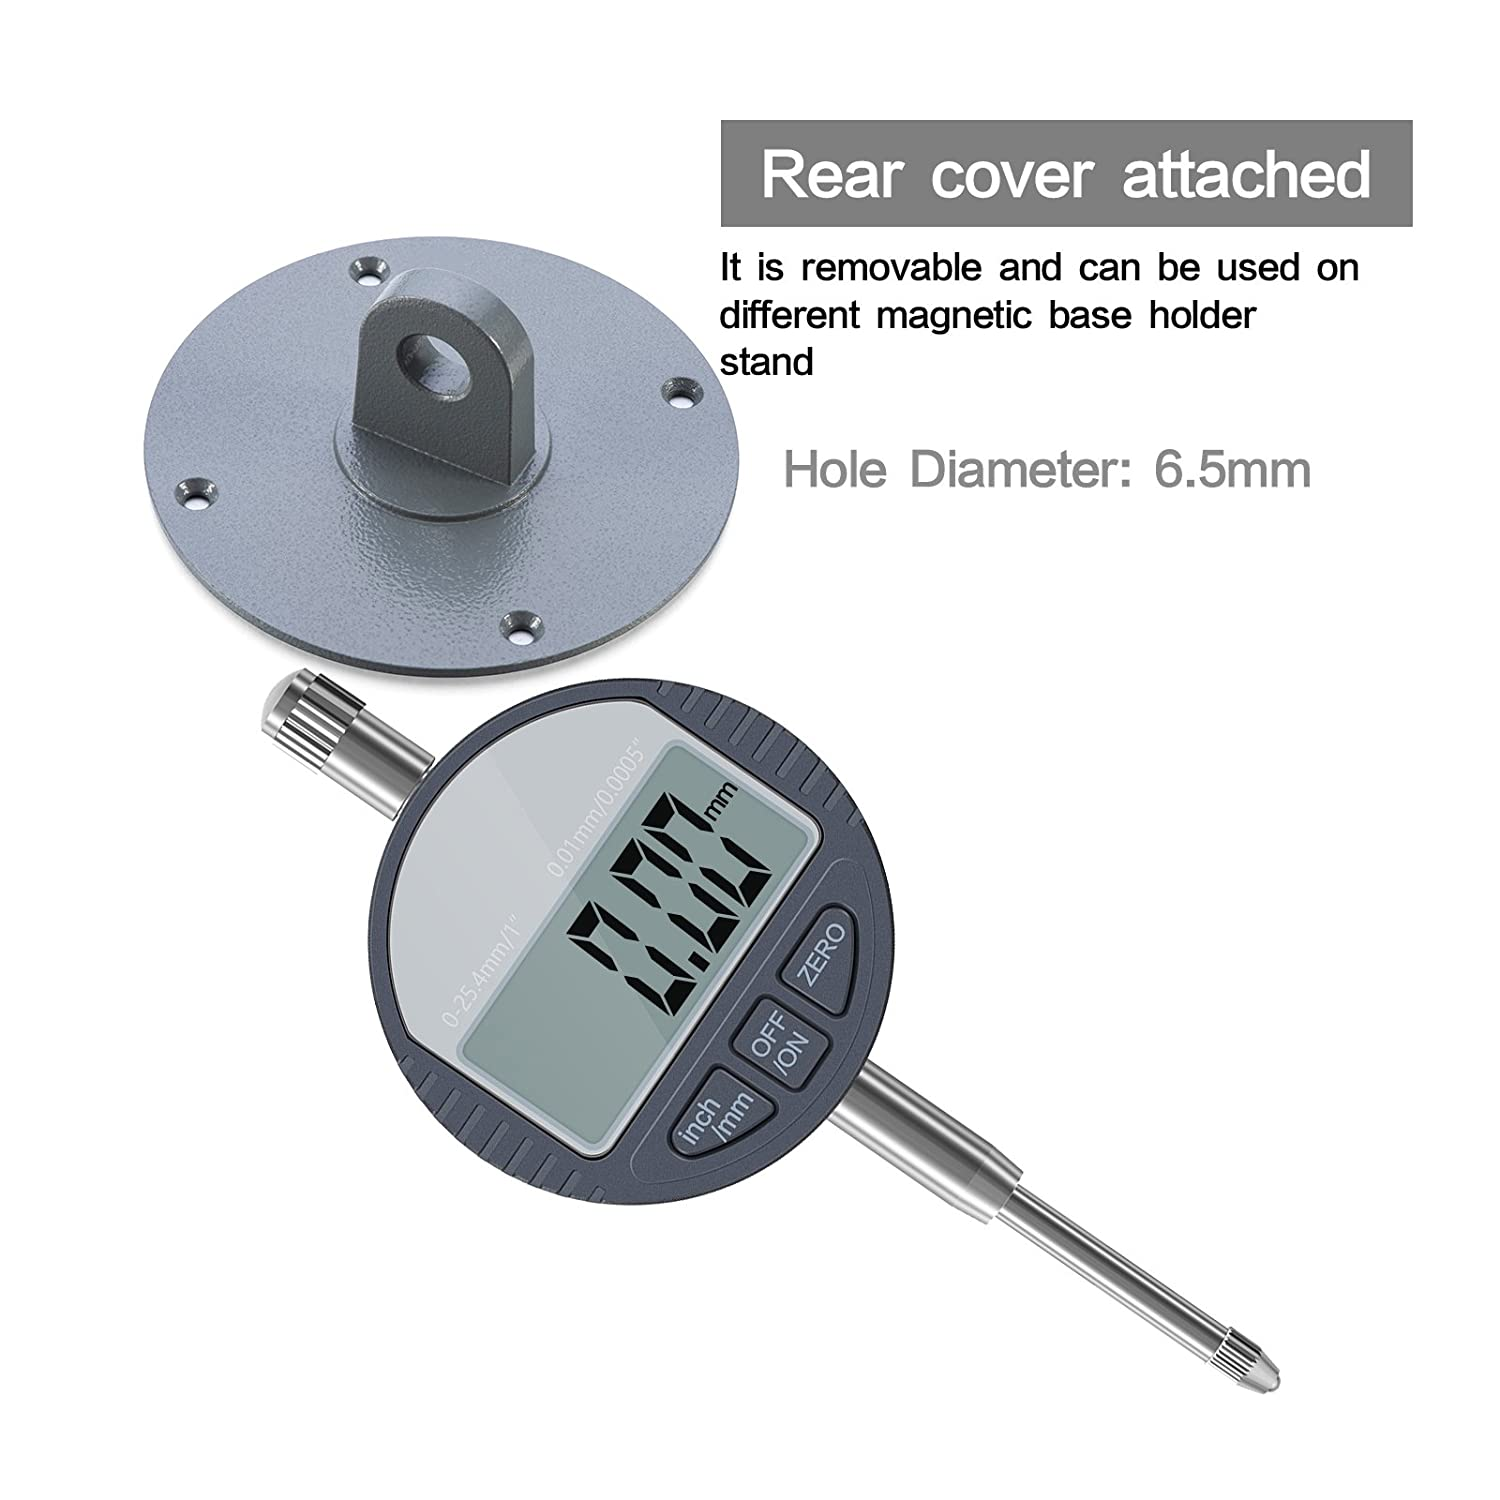 DTI Digital Dial Indicator ASEL 0.01//.0005 Digital Probe Indicator Dial Test Gauge Range 0-25.4mm//1 Dial Test Indicators Electronic Indicator Gauge